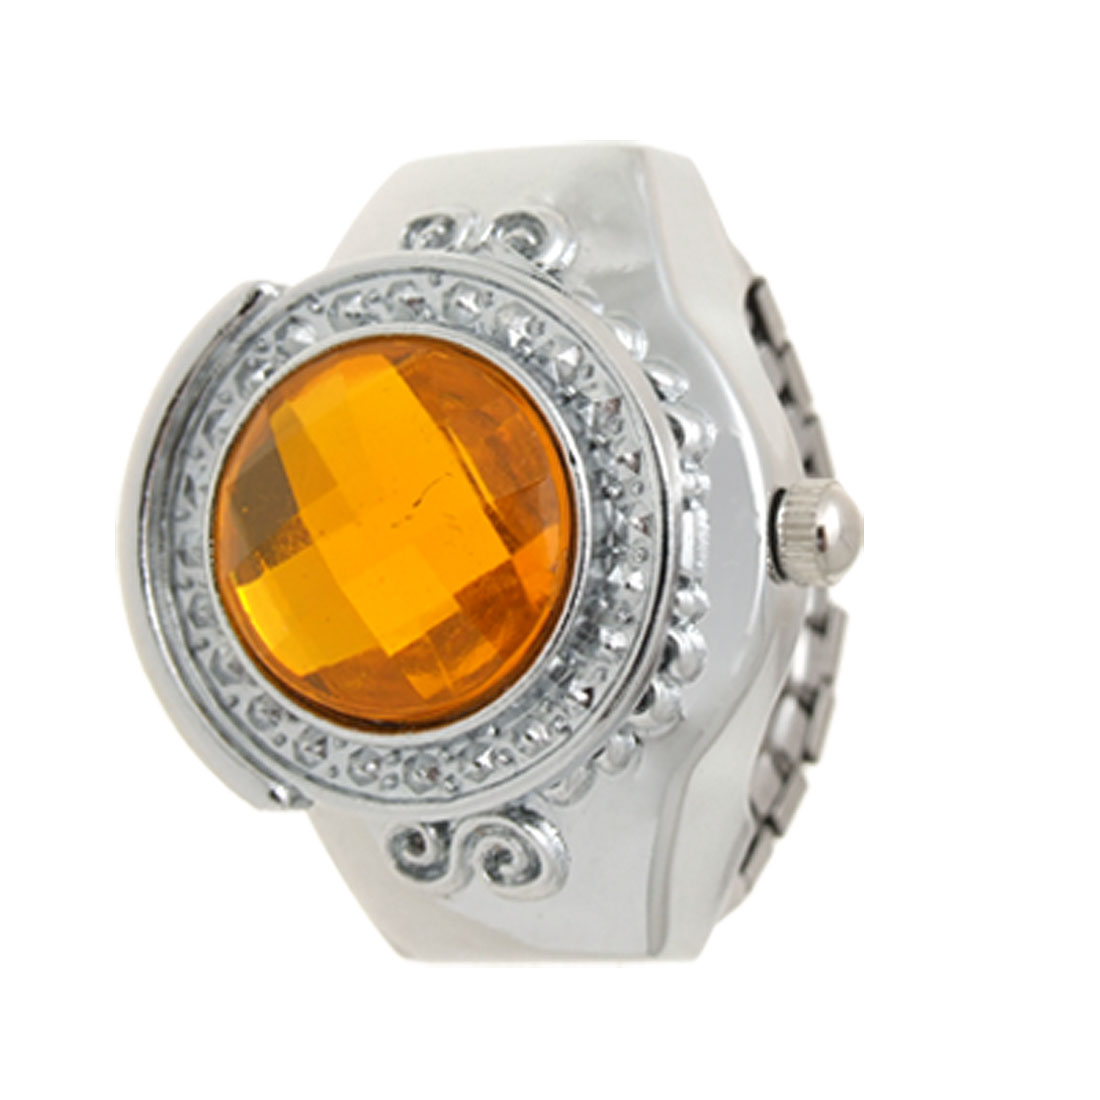 Fashion Jewelry Orange Man-made Gem Finger Ring Watch